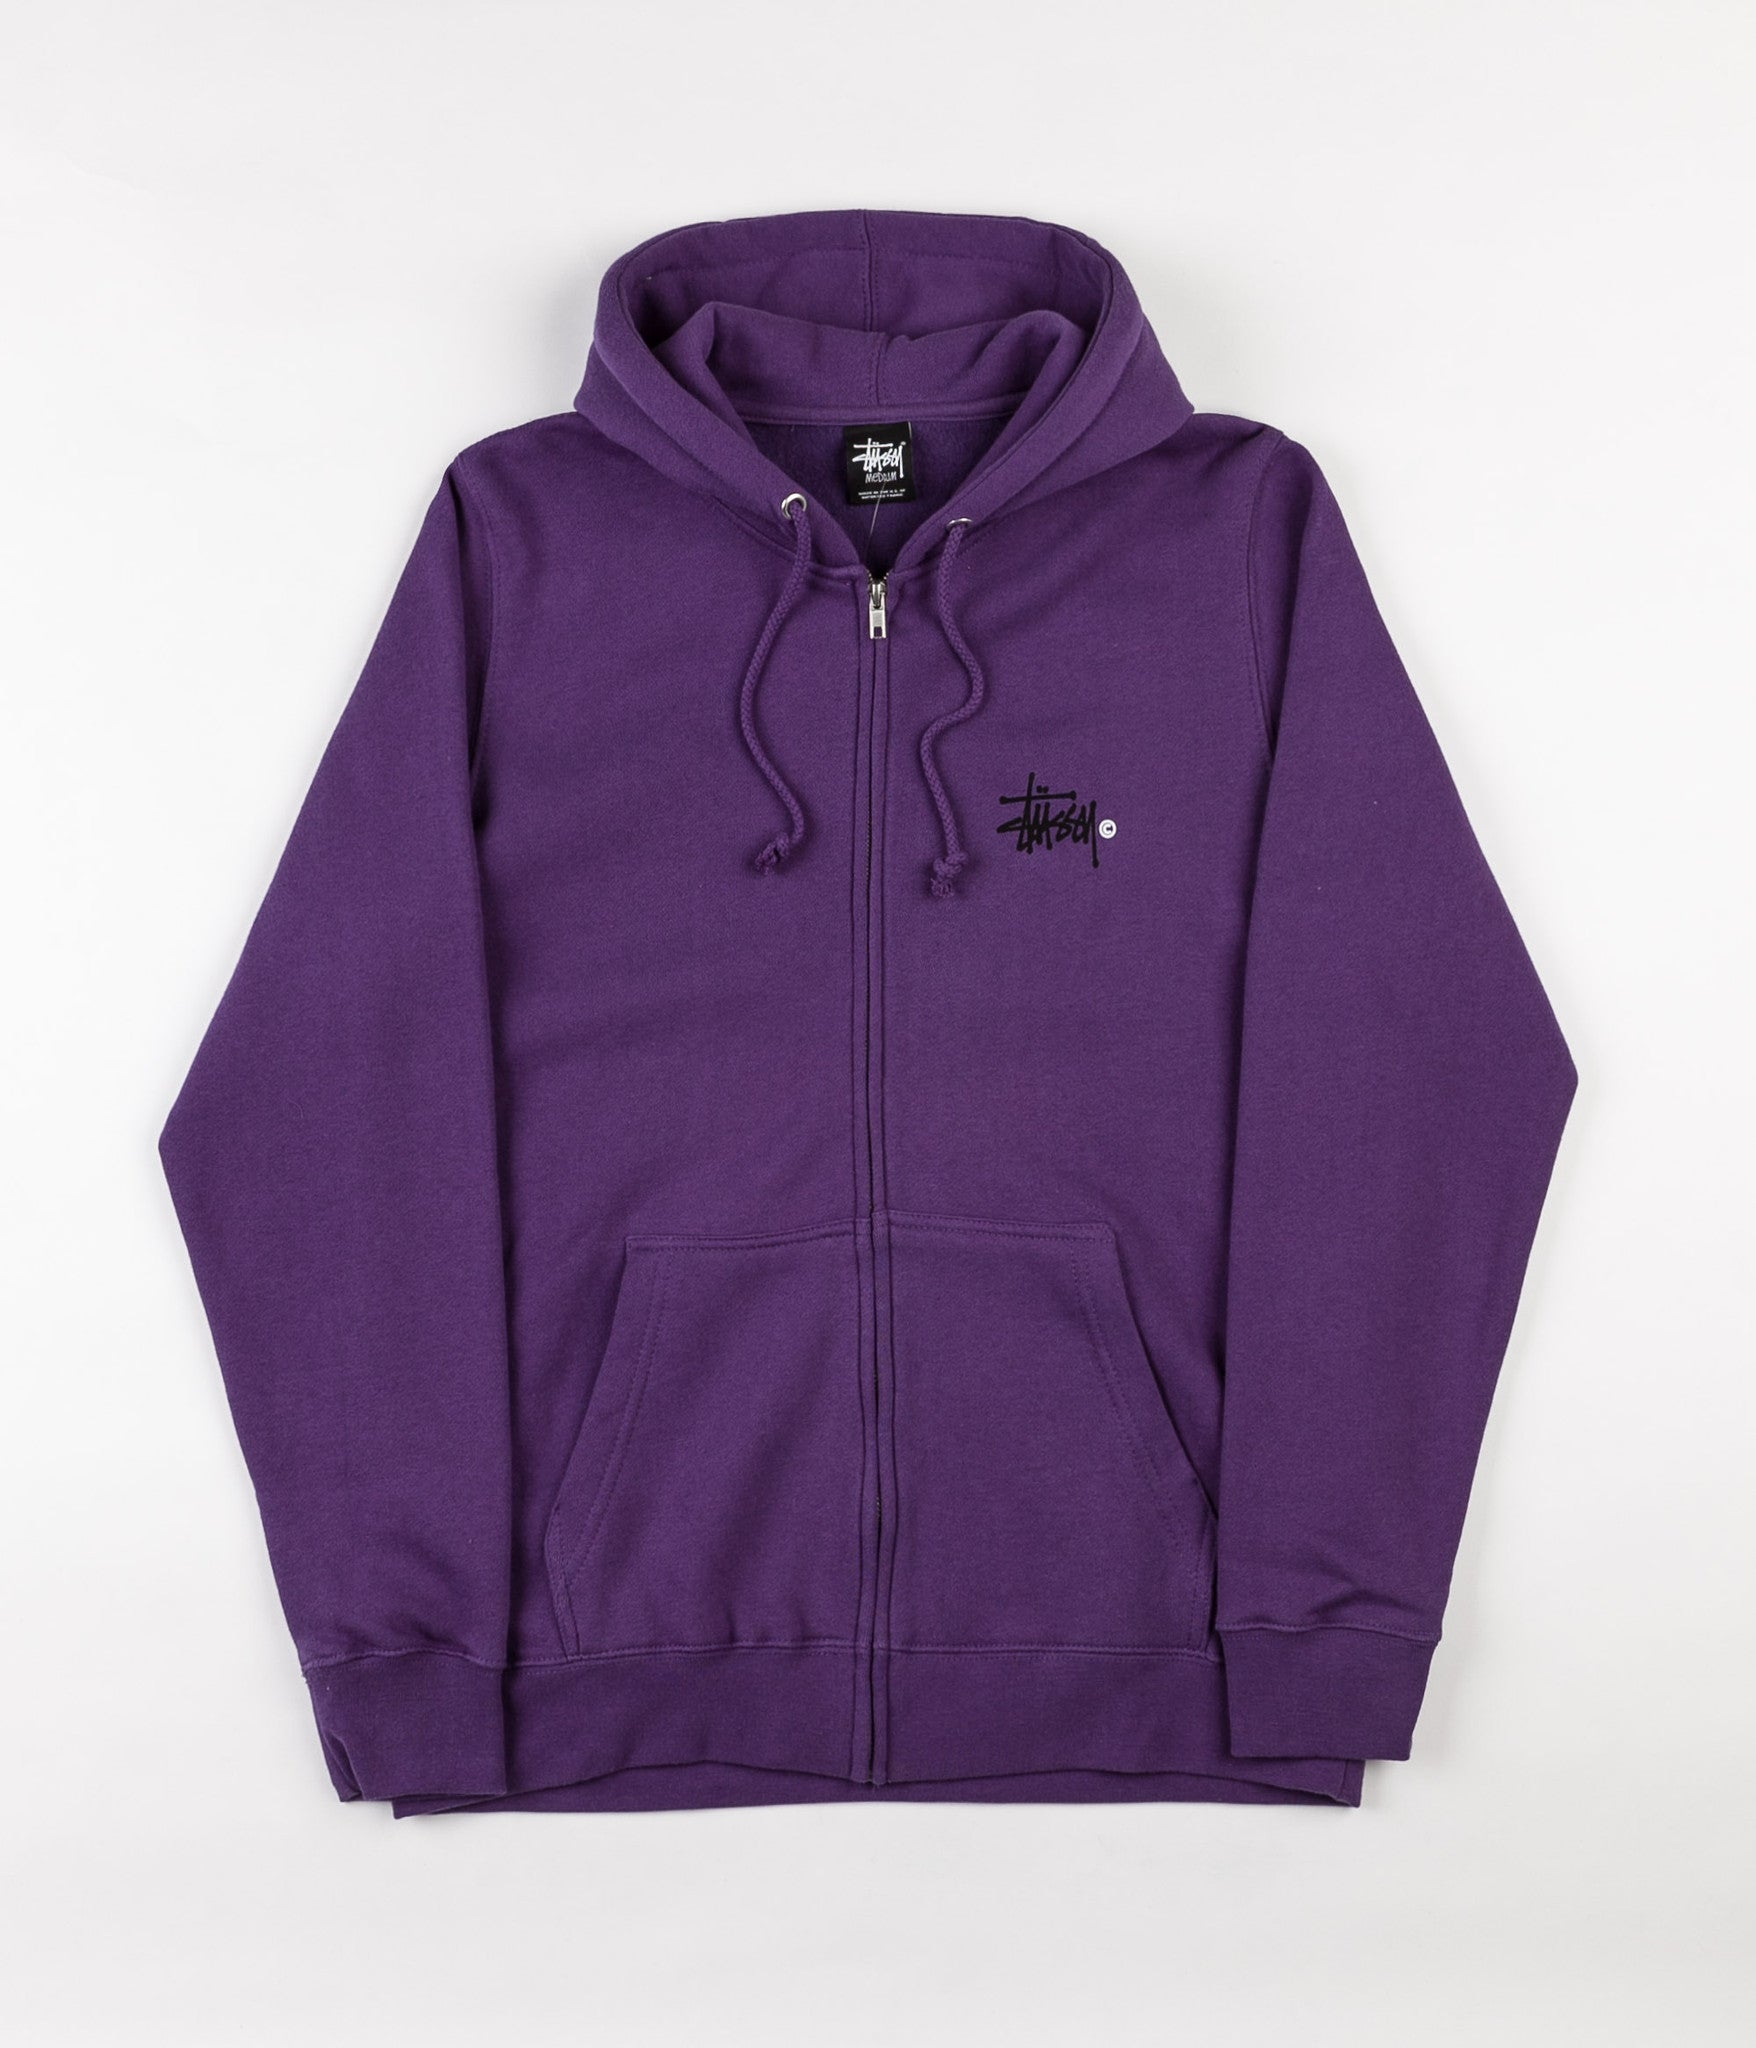 Stussy Basic Logo Zip Hooded Sweatshirt - Purple